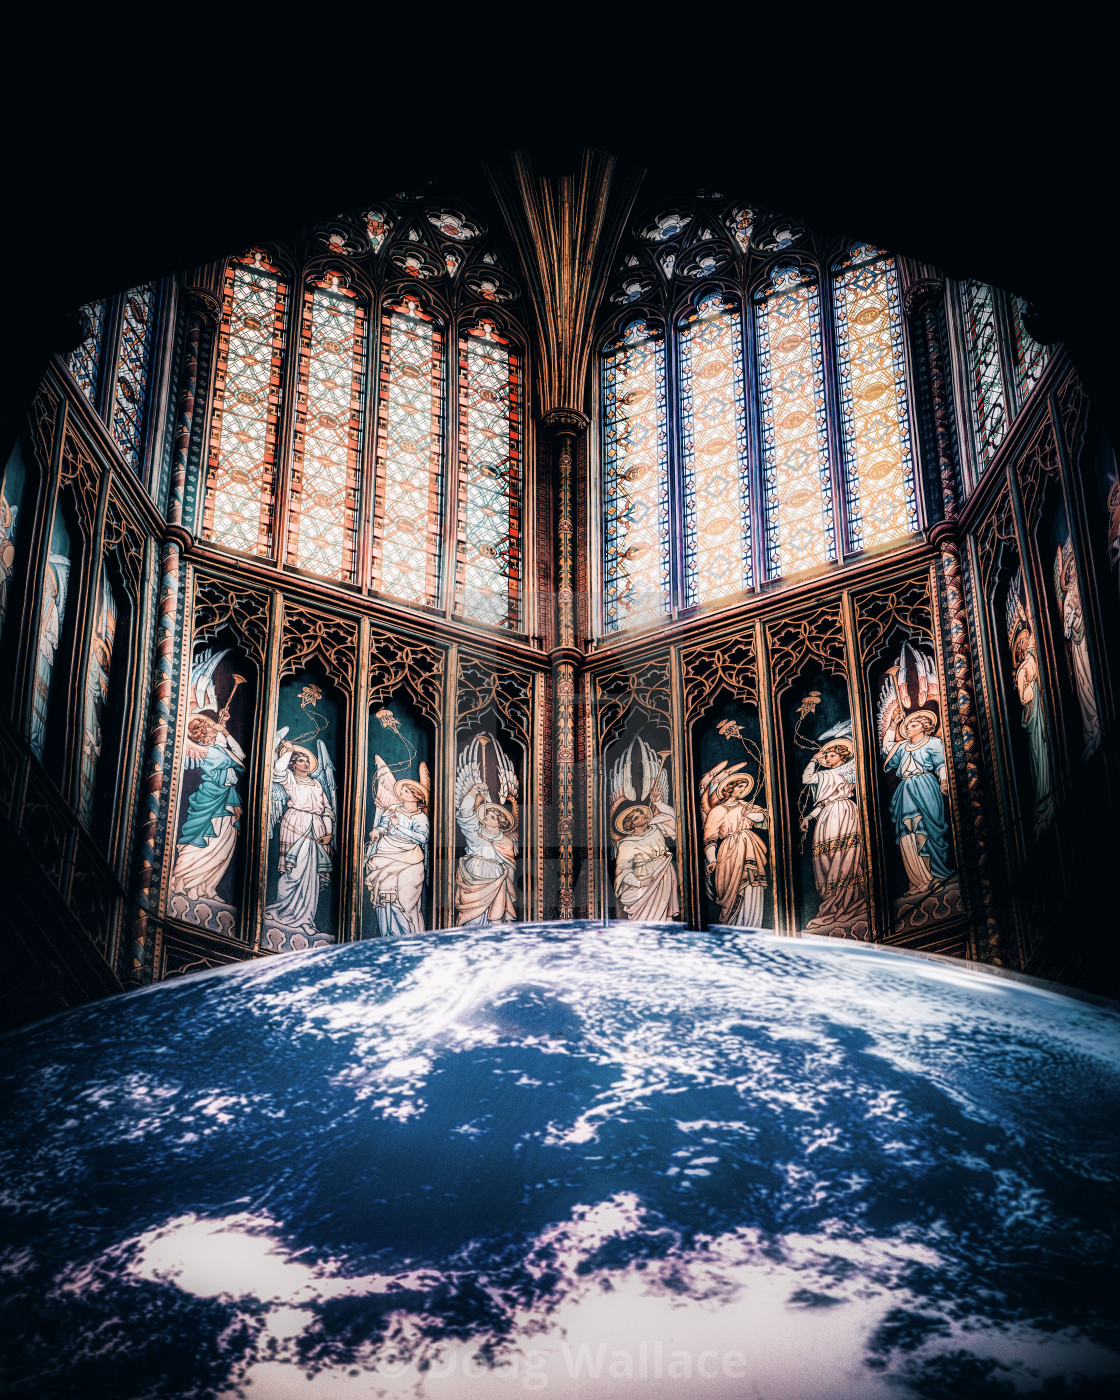 The Octagon Tower and Gaia, Ely UK.